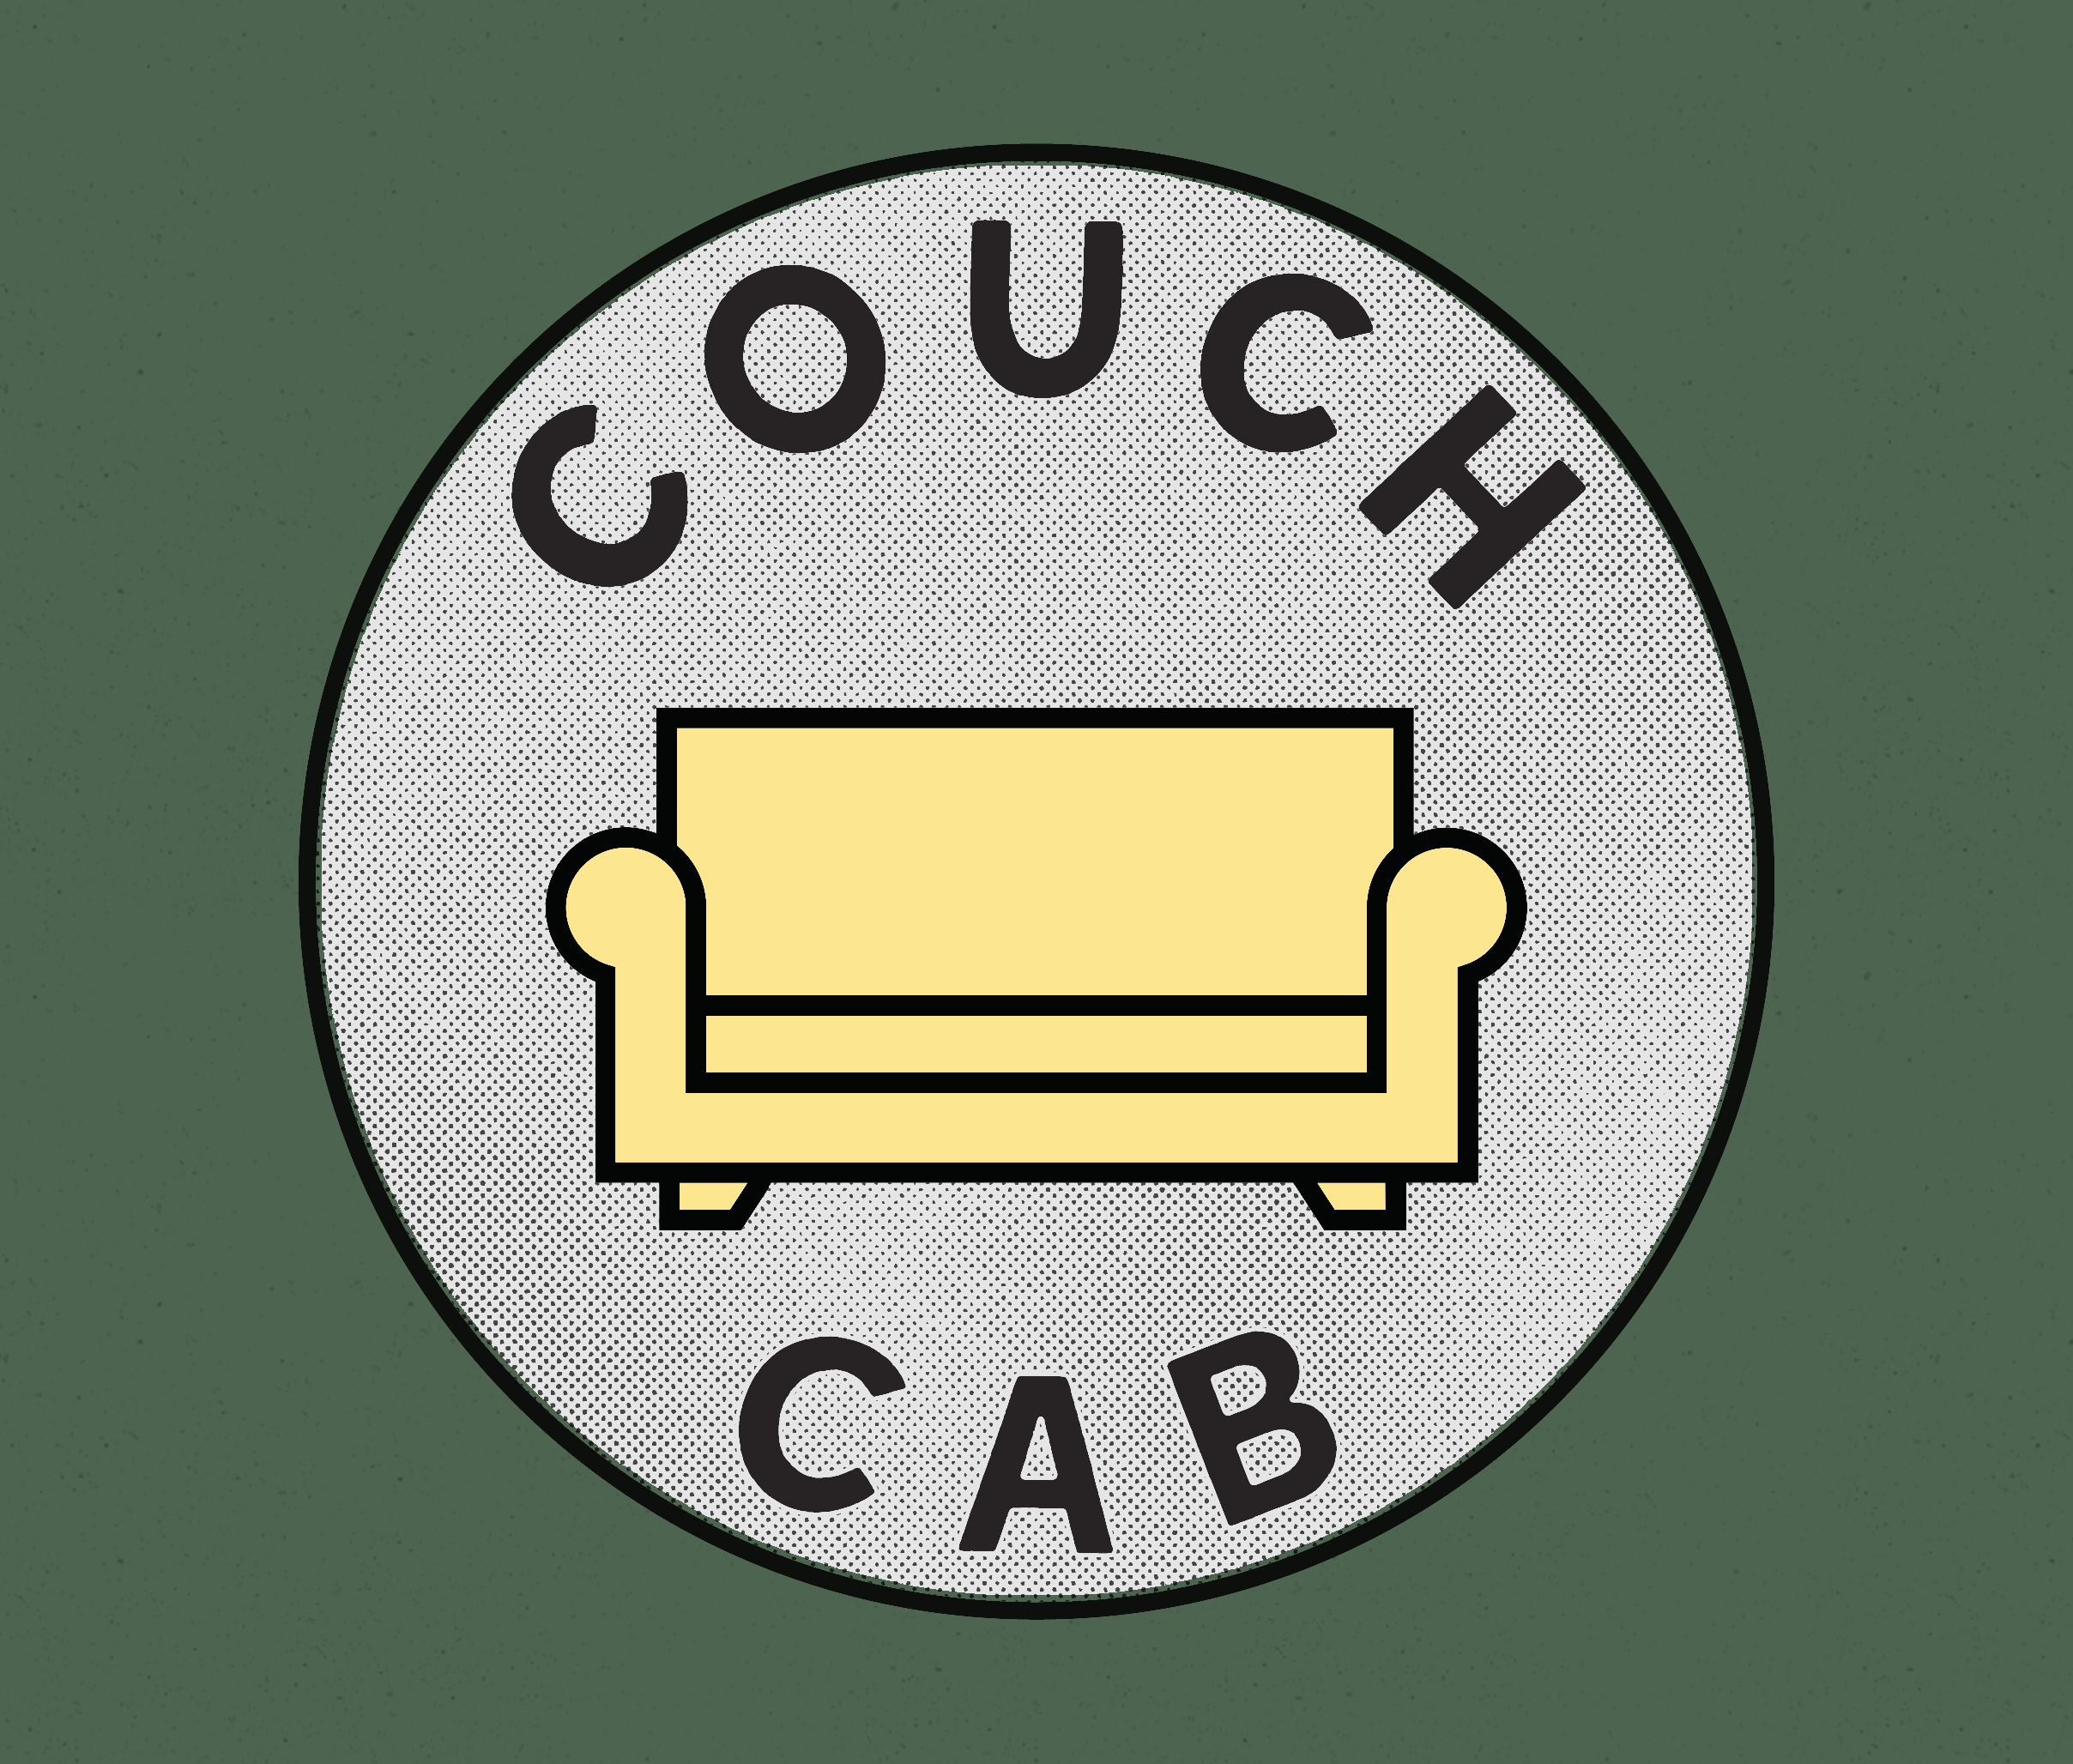 New badge for Couch Cab — ALEX-CONOVER COM